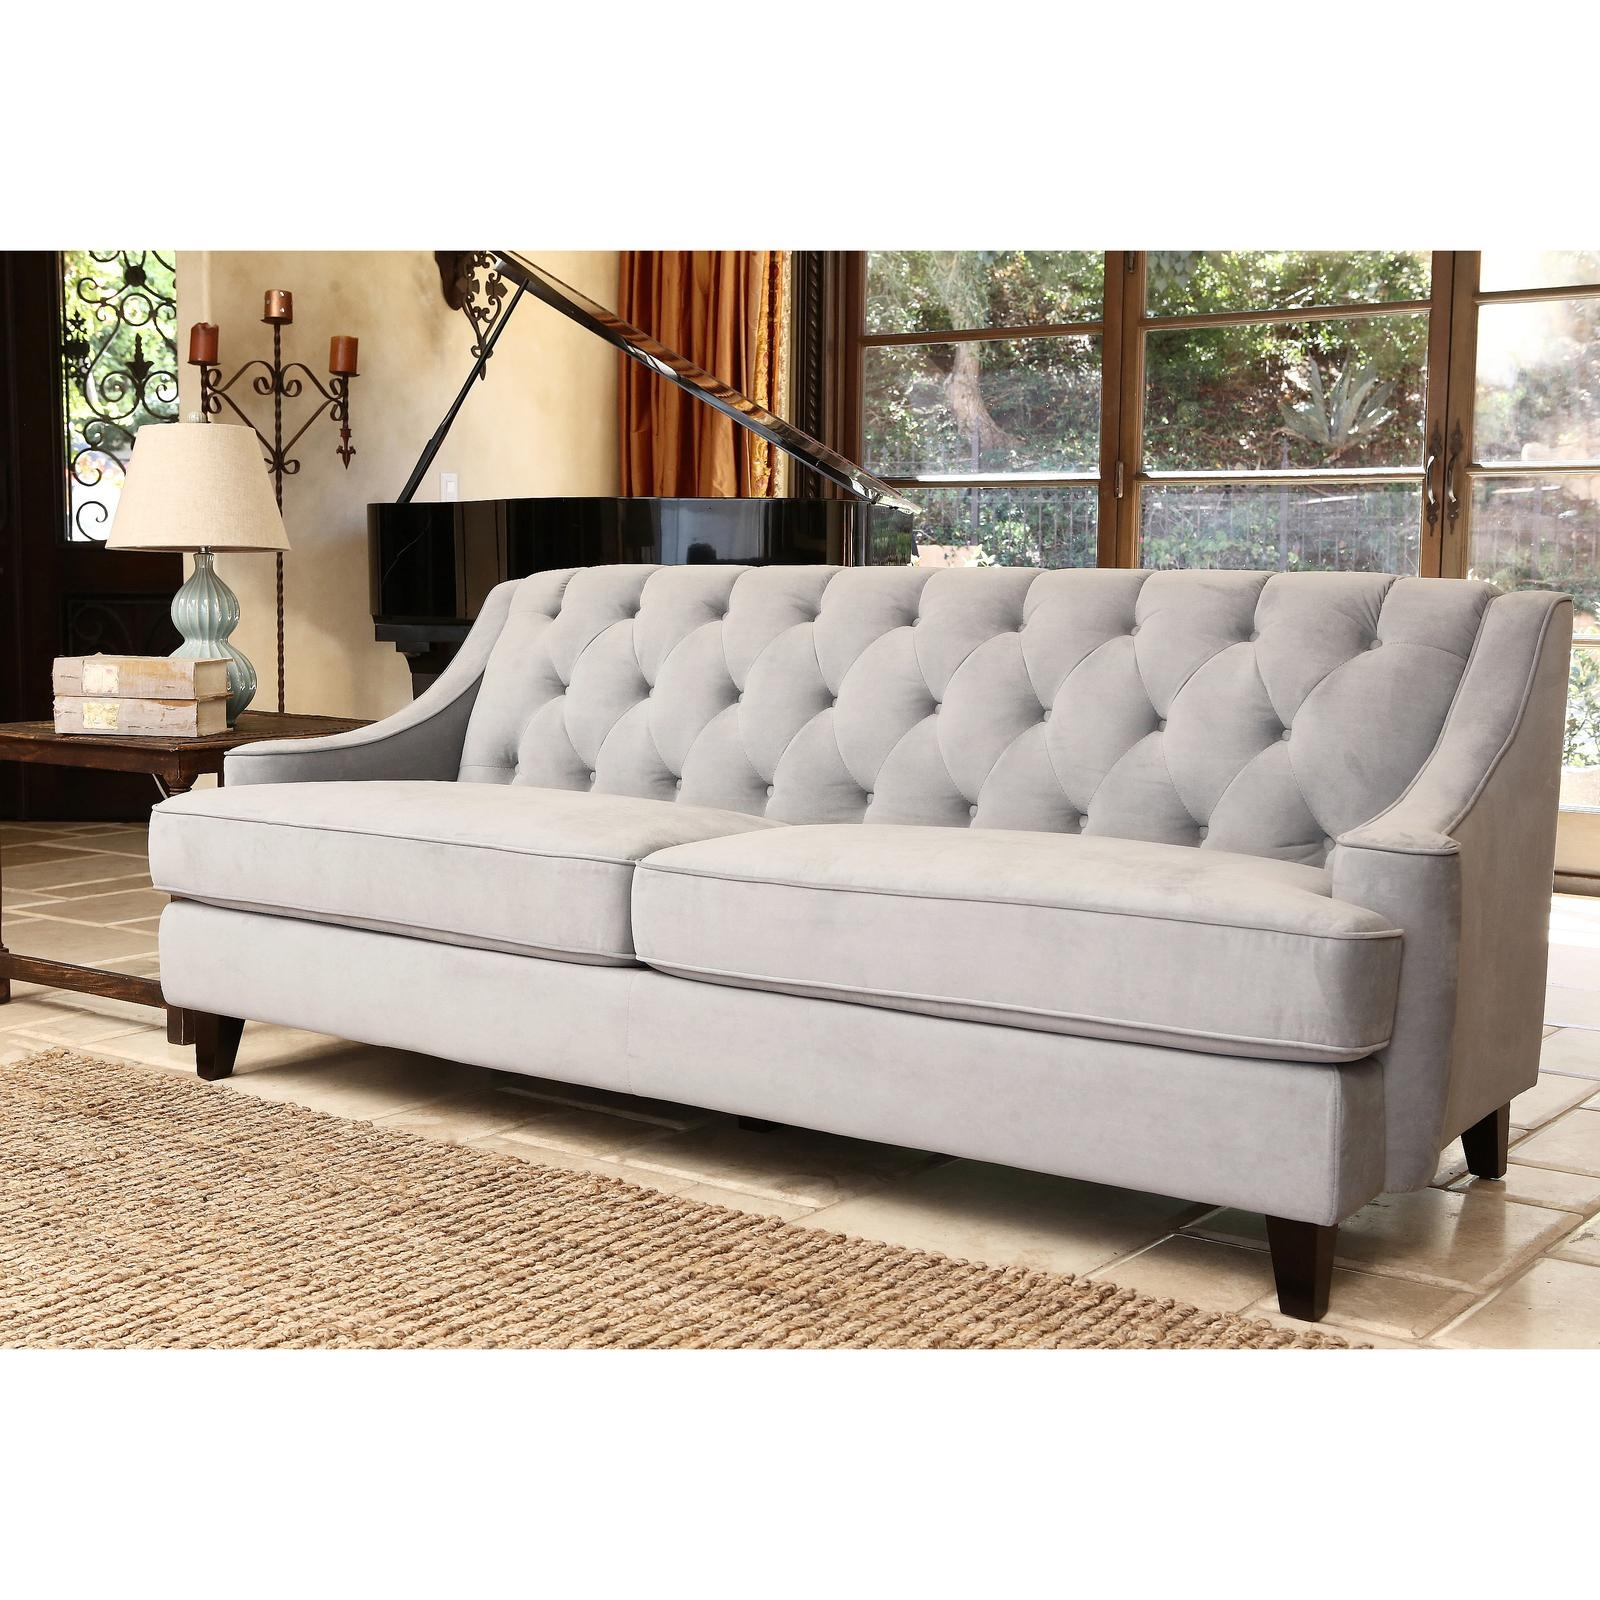 Sofas : Wonderful Modern Sectional Couches Cheap Sectionals L Pertaining To Cheap Tufted Sofas (Image 21 of 23)